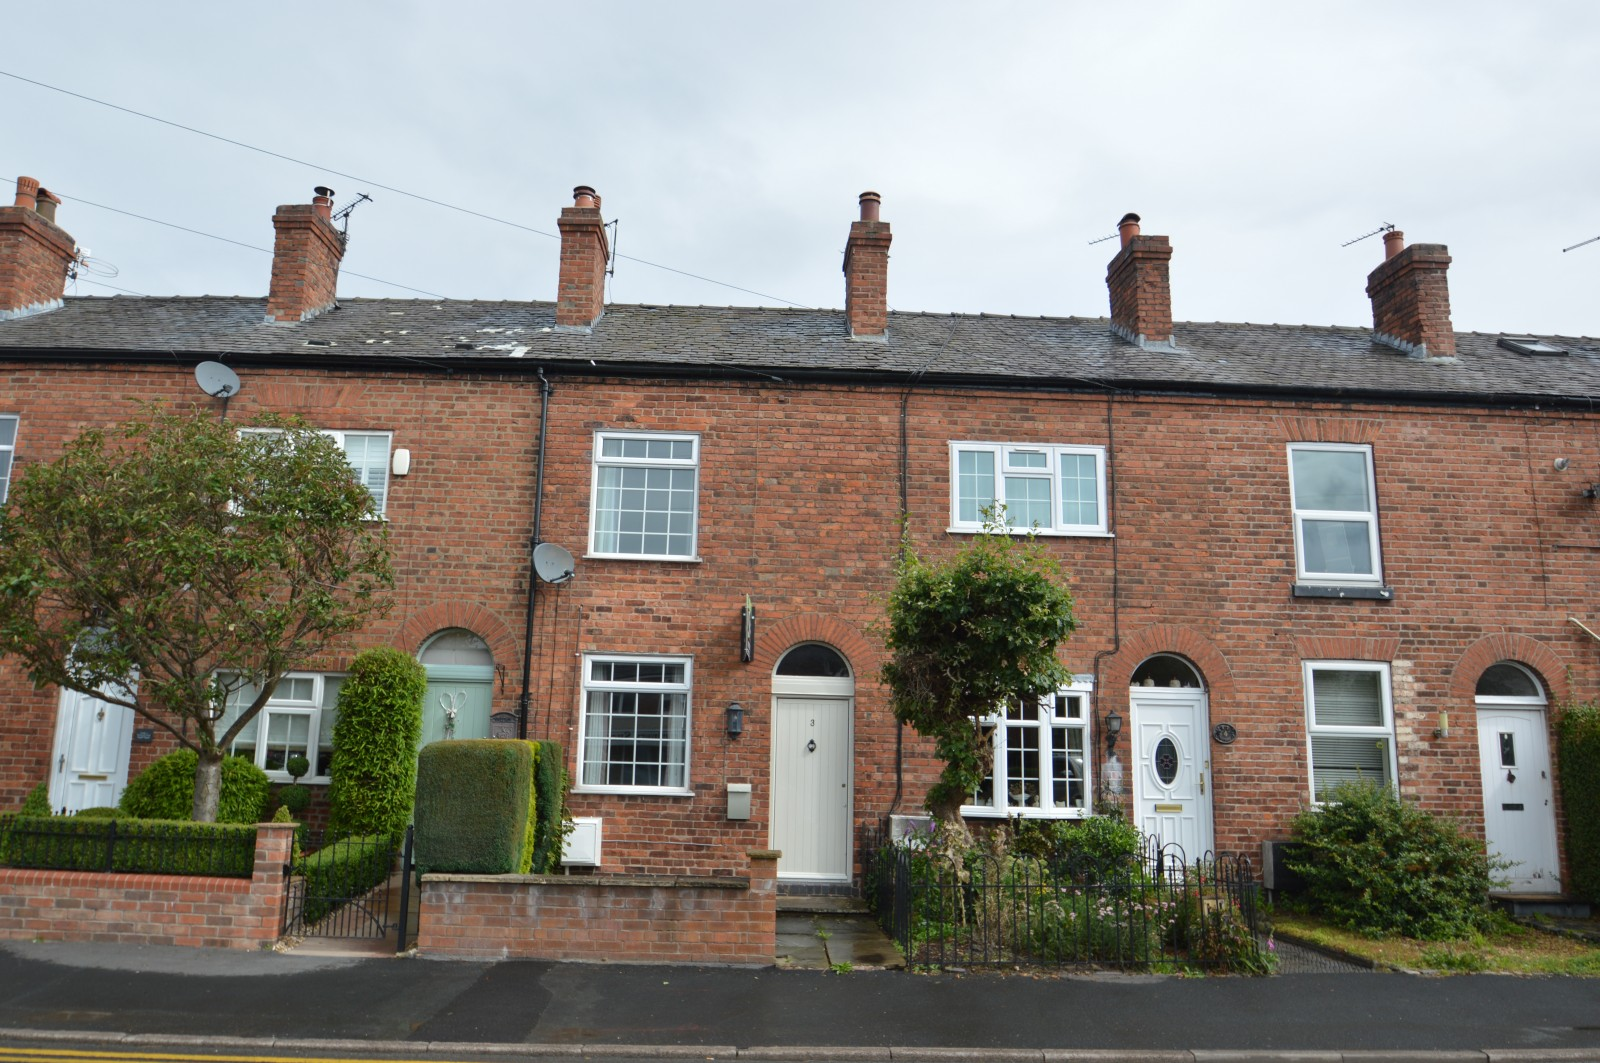 Greenwood Terrace, Town Lane, Mobberley